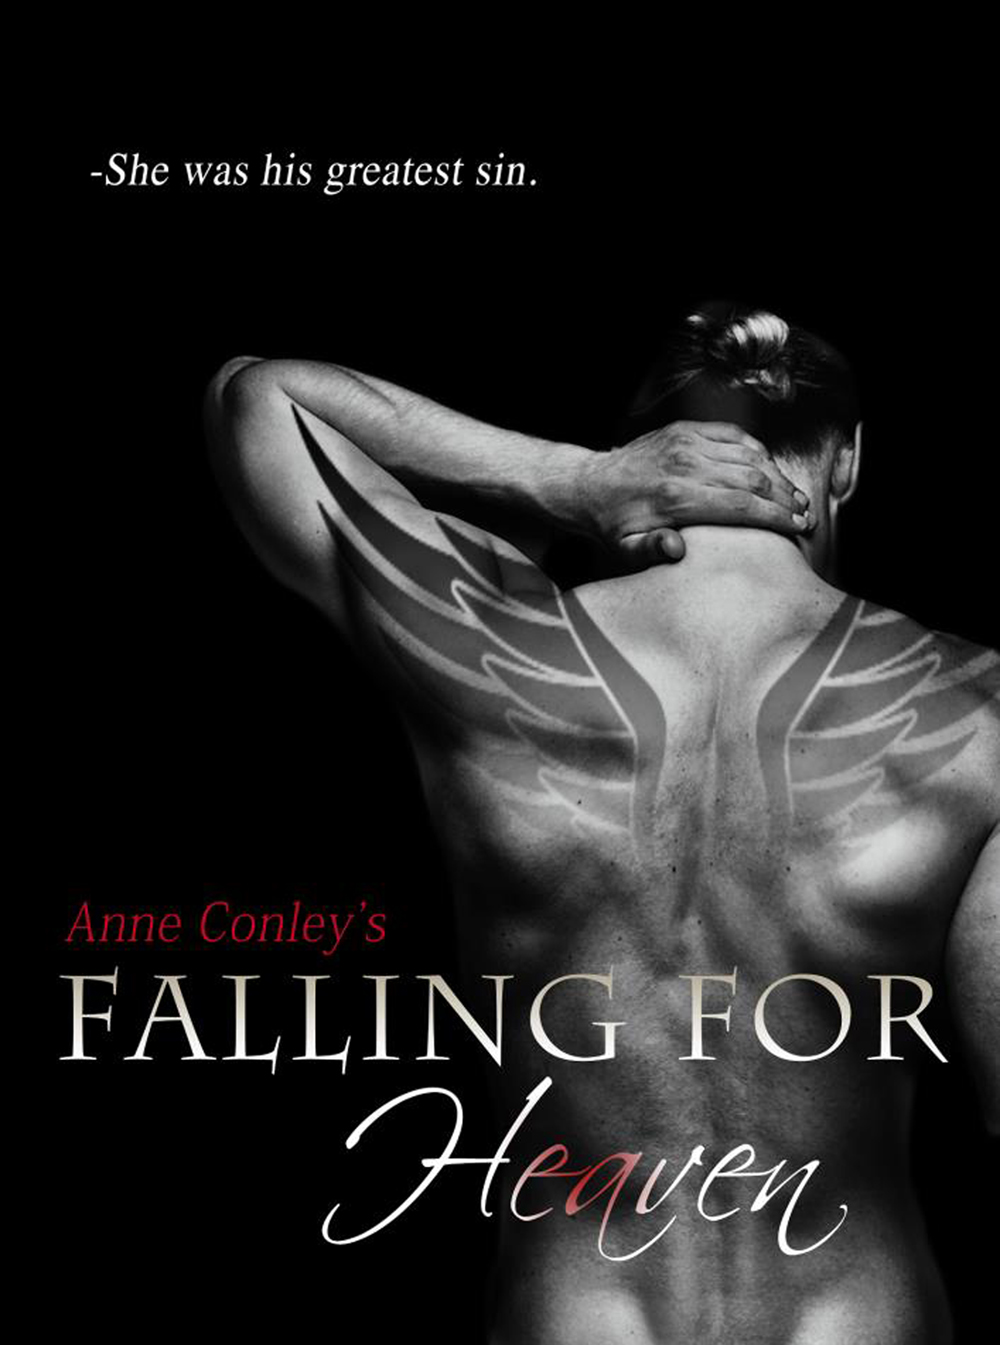 Anne Conley Falling For Heaven